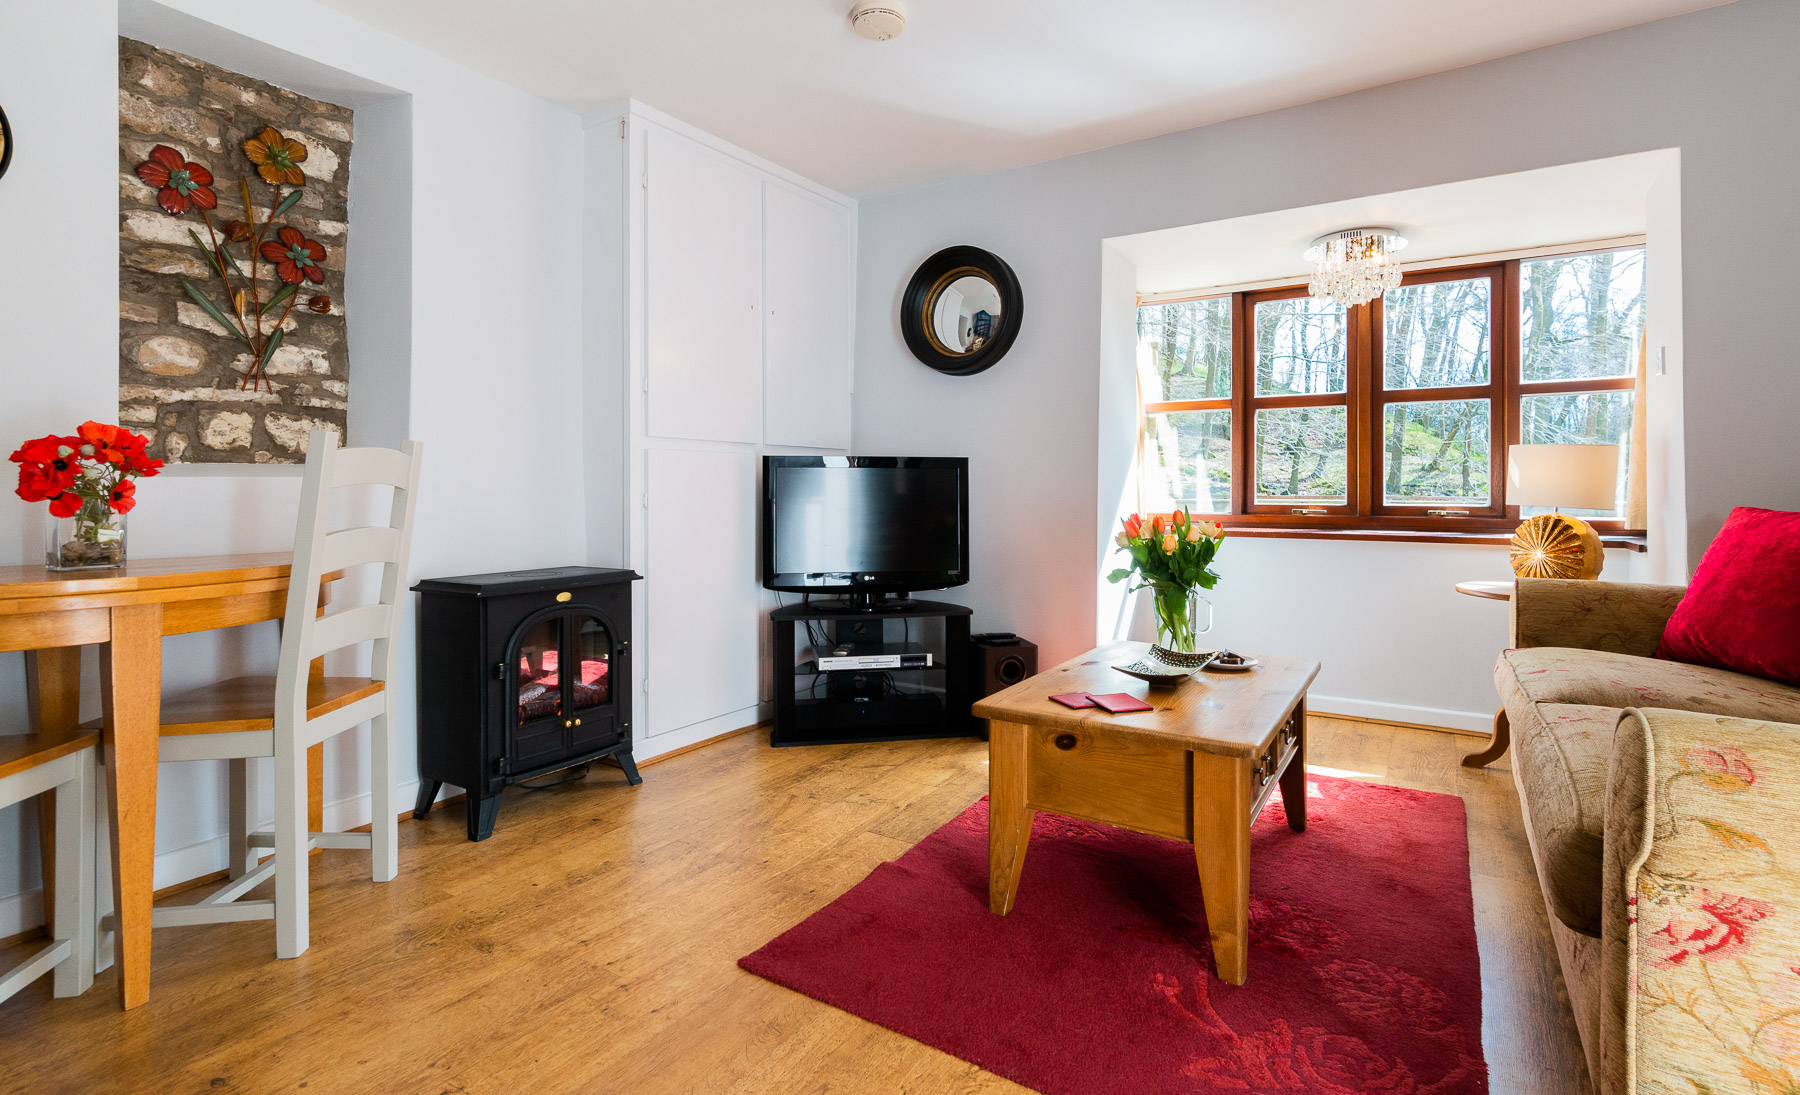 Courtyard Cottage Lounge. A pet friendly holiday cottage.